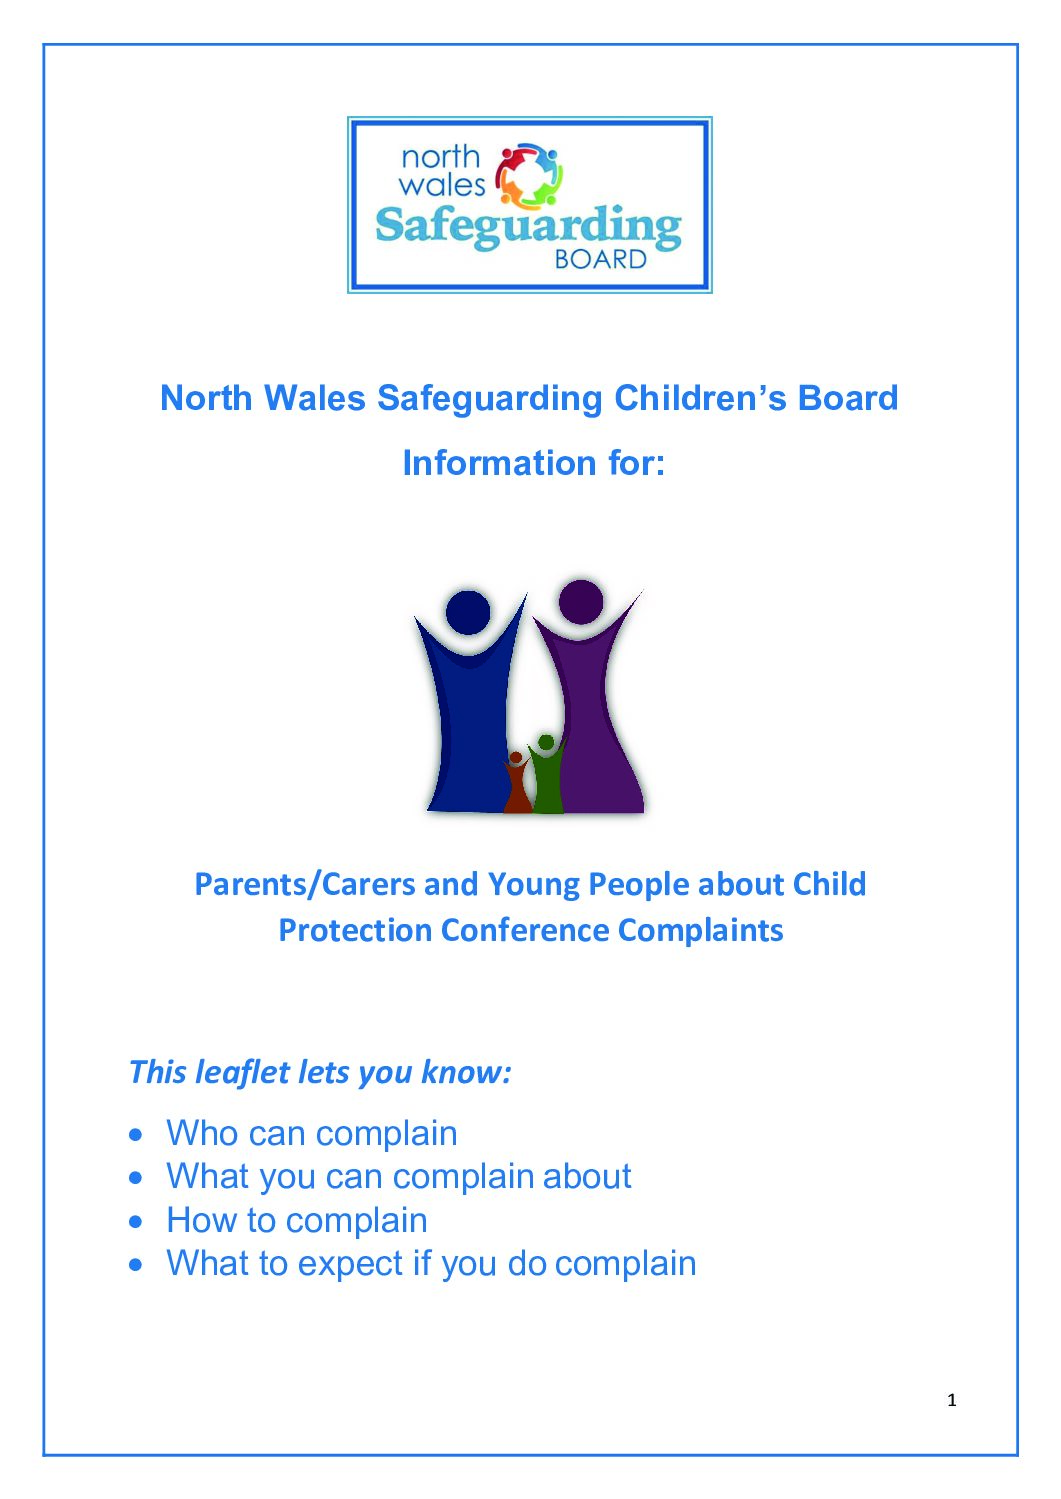 NWSCB Information for Parents/Carers and Young People about Child Protection Conference Complaints